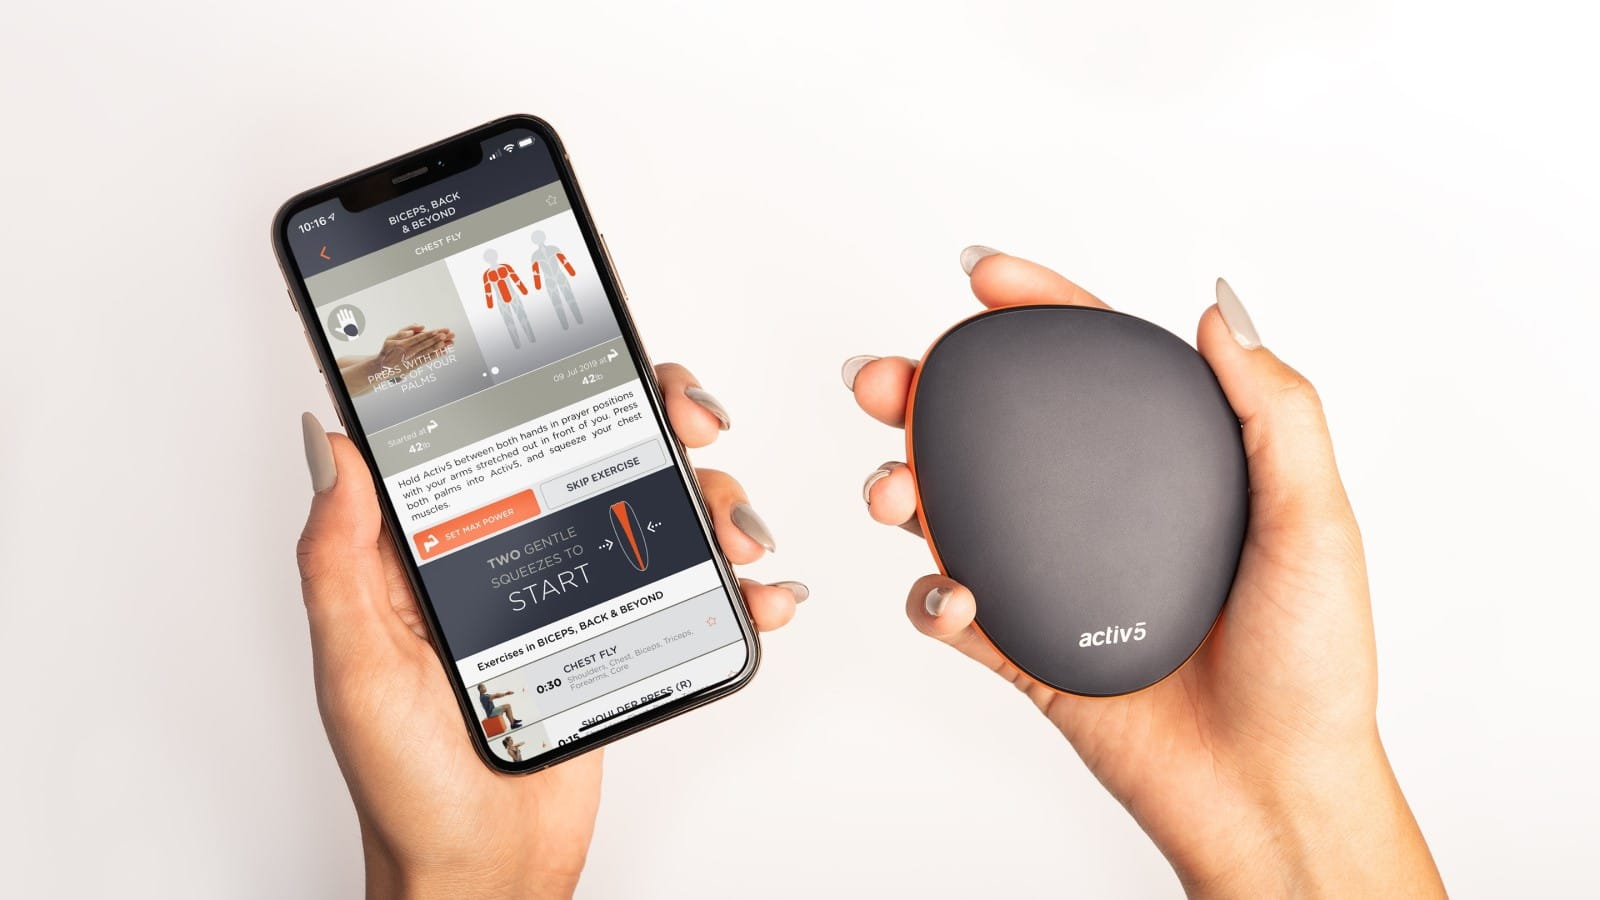 activ5 fitness coaching device and smartphone app